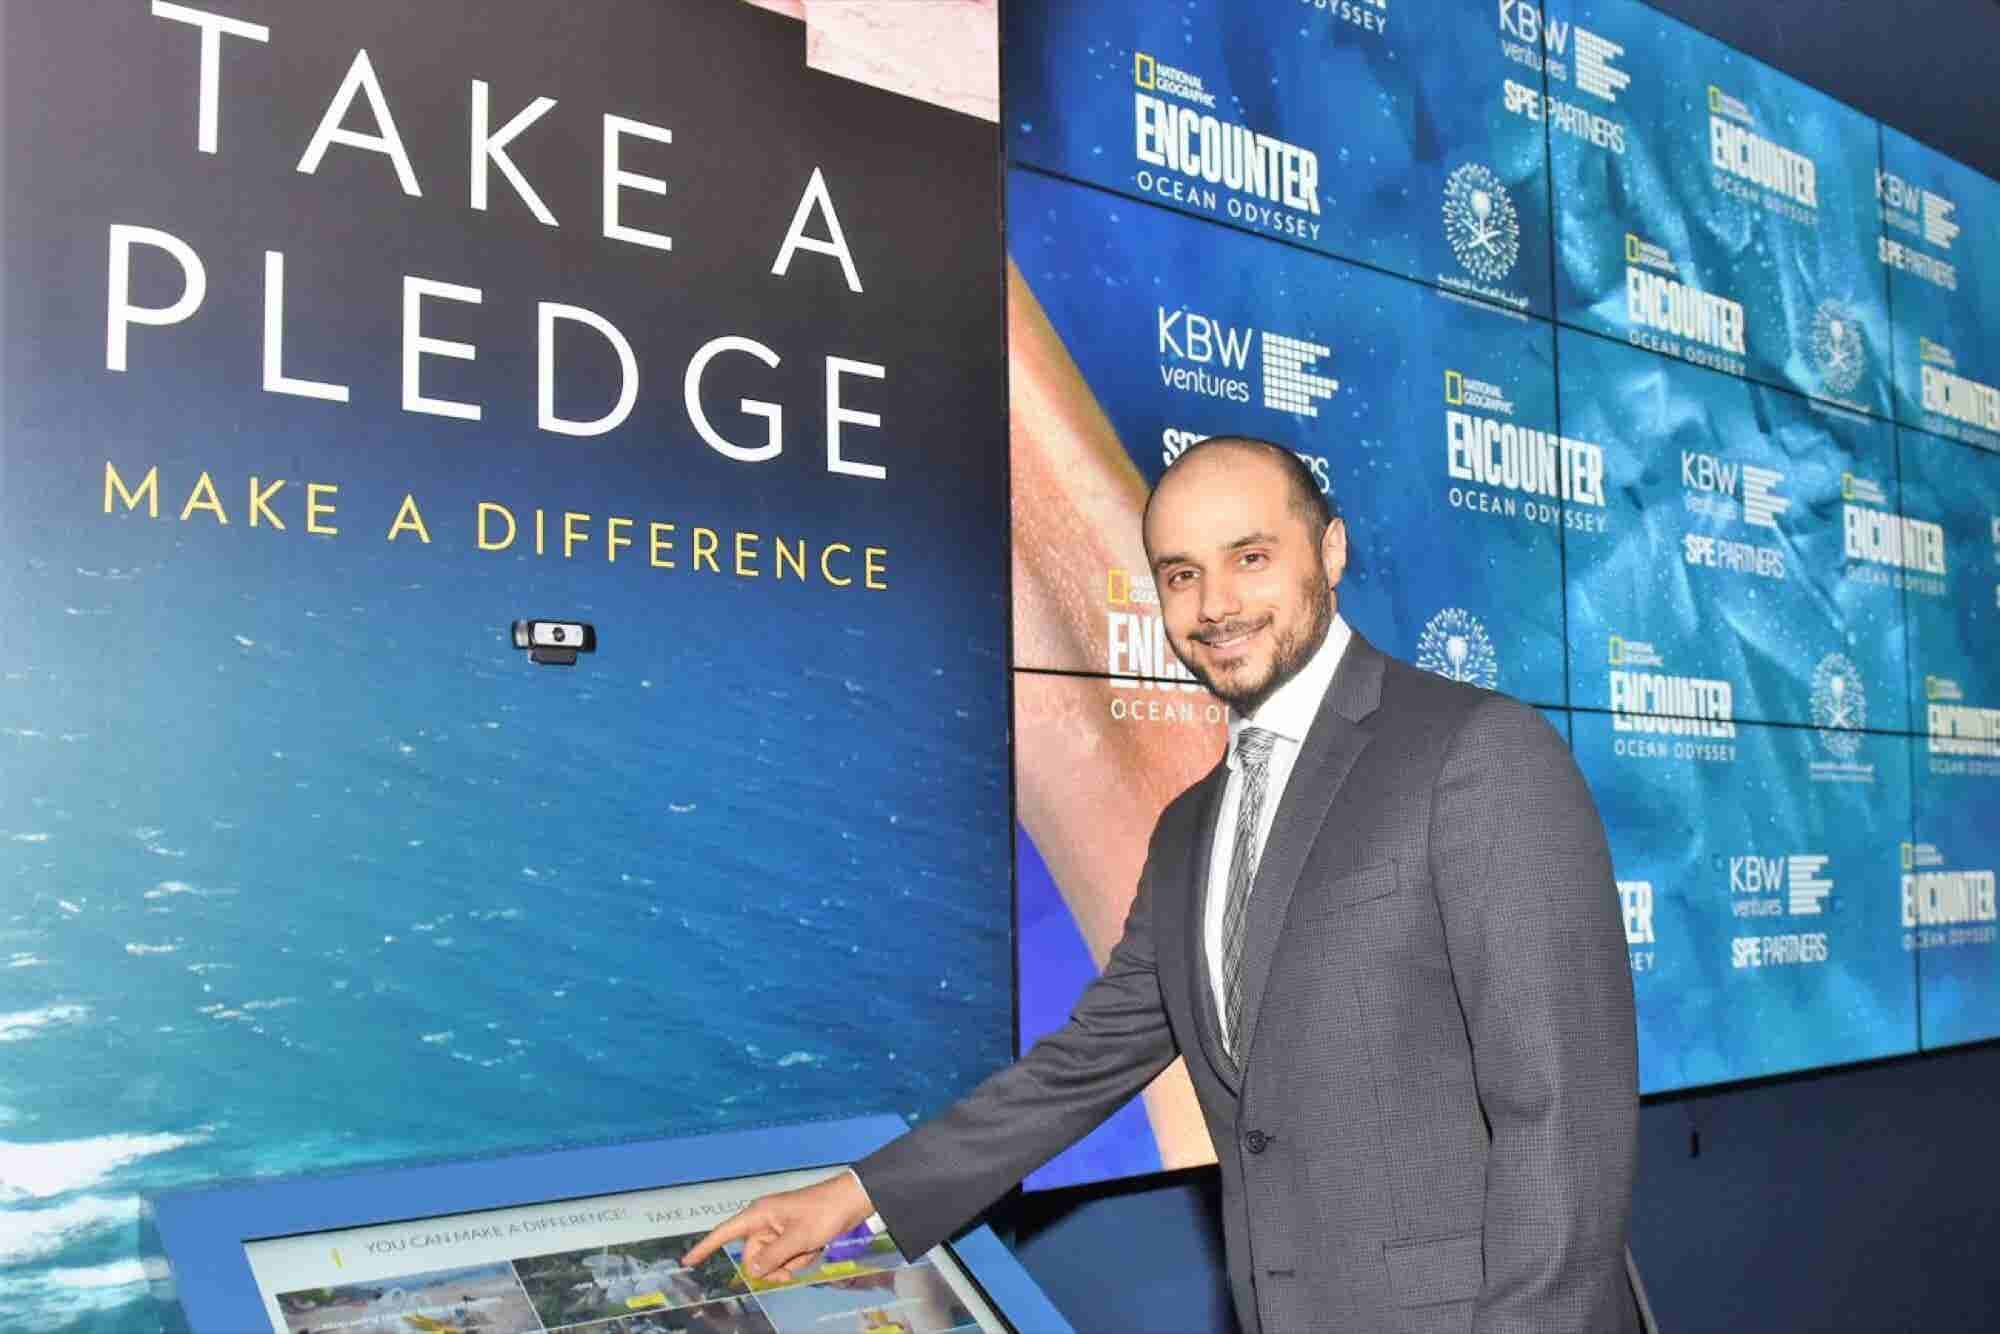 KSA's Entertainment Authority And KBW Ventures Bring Nat Geo's Ocean Odyssey To The Kingdom